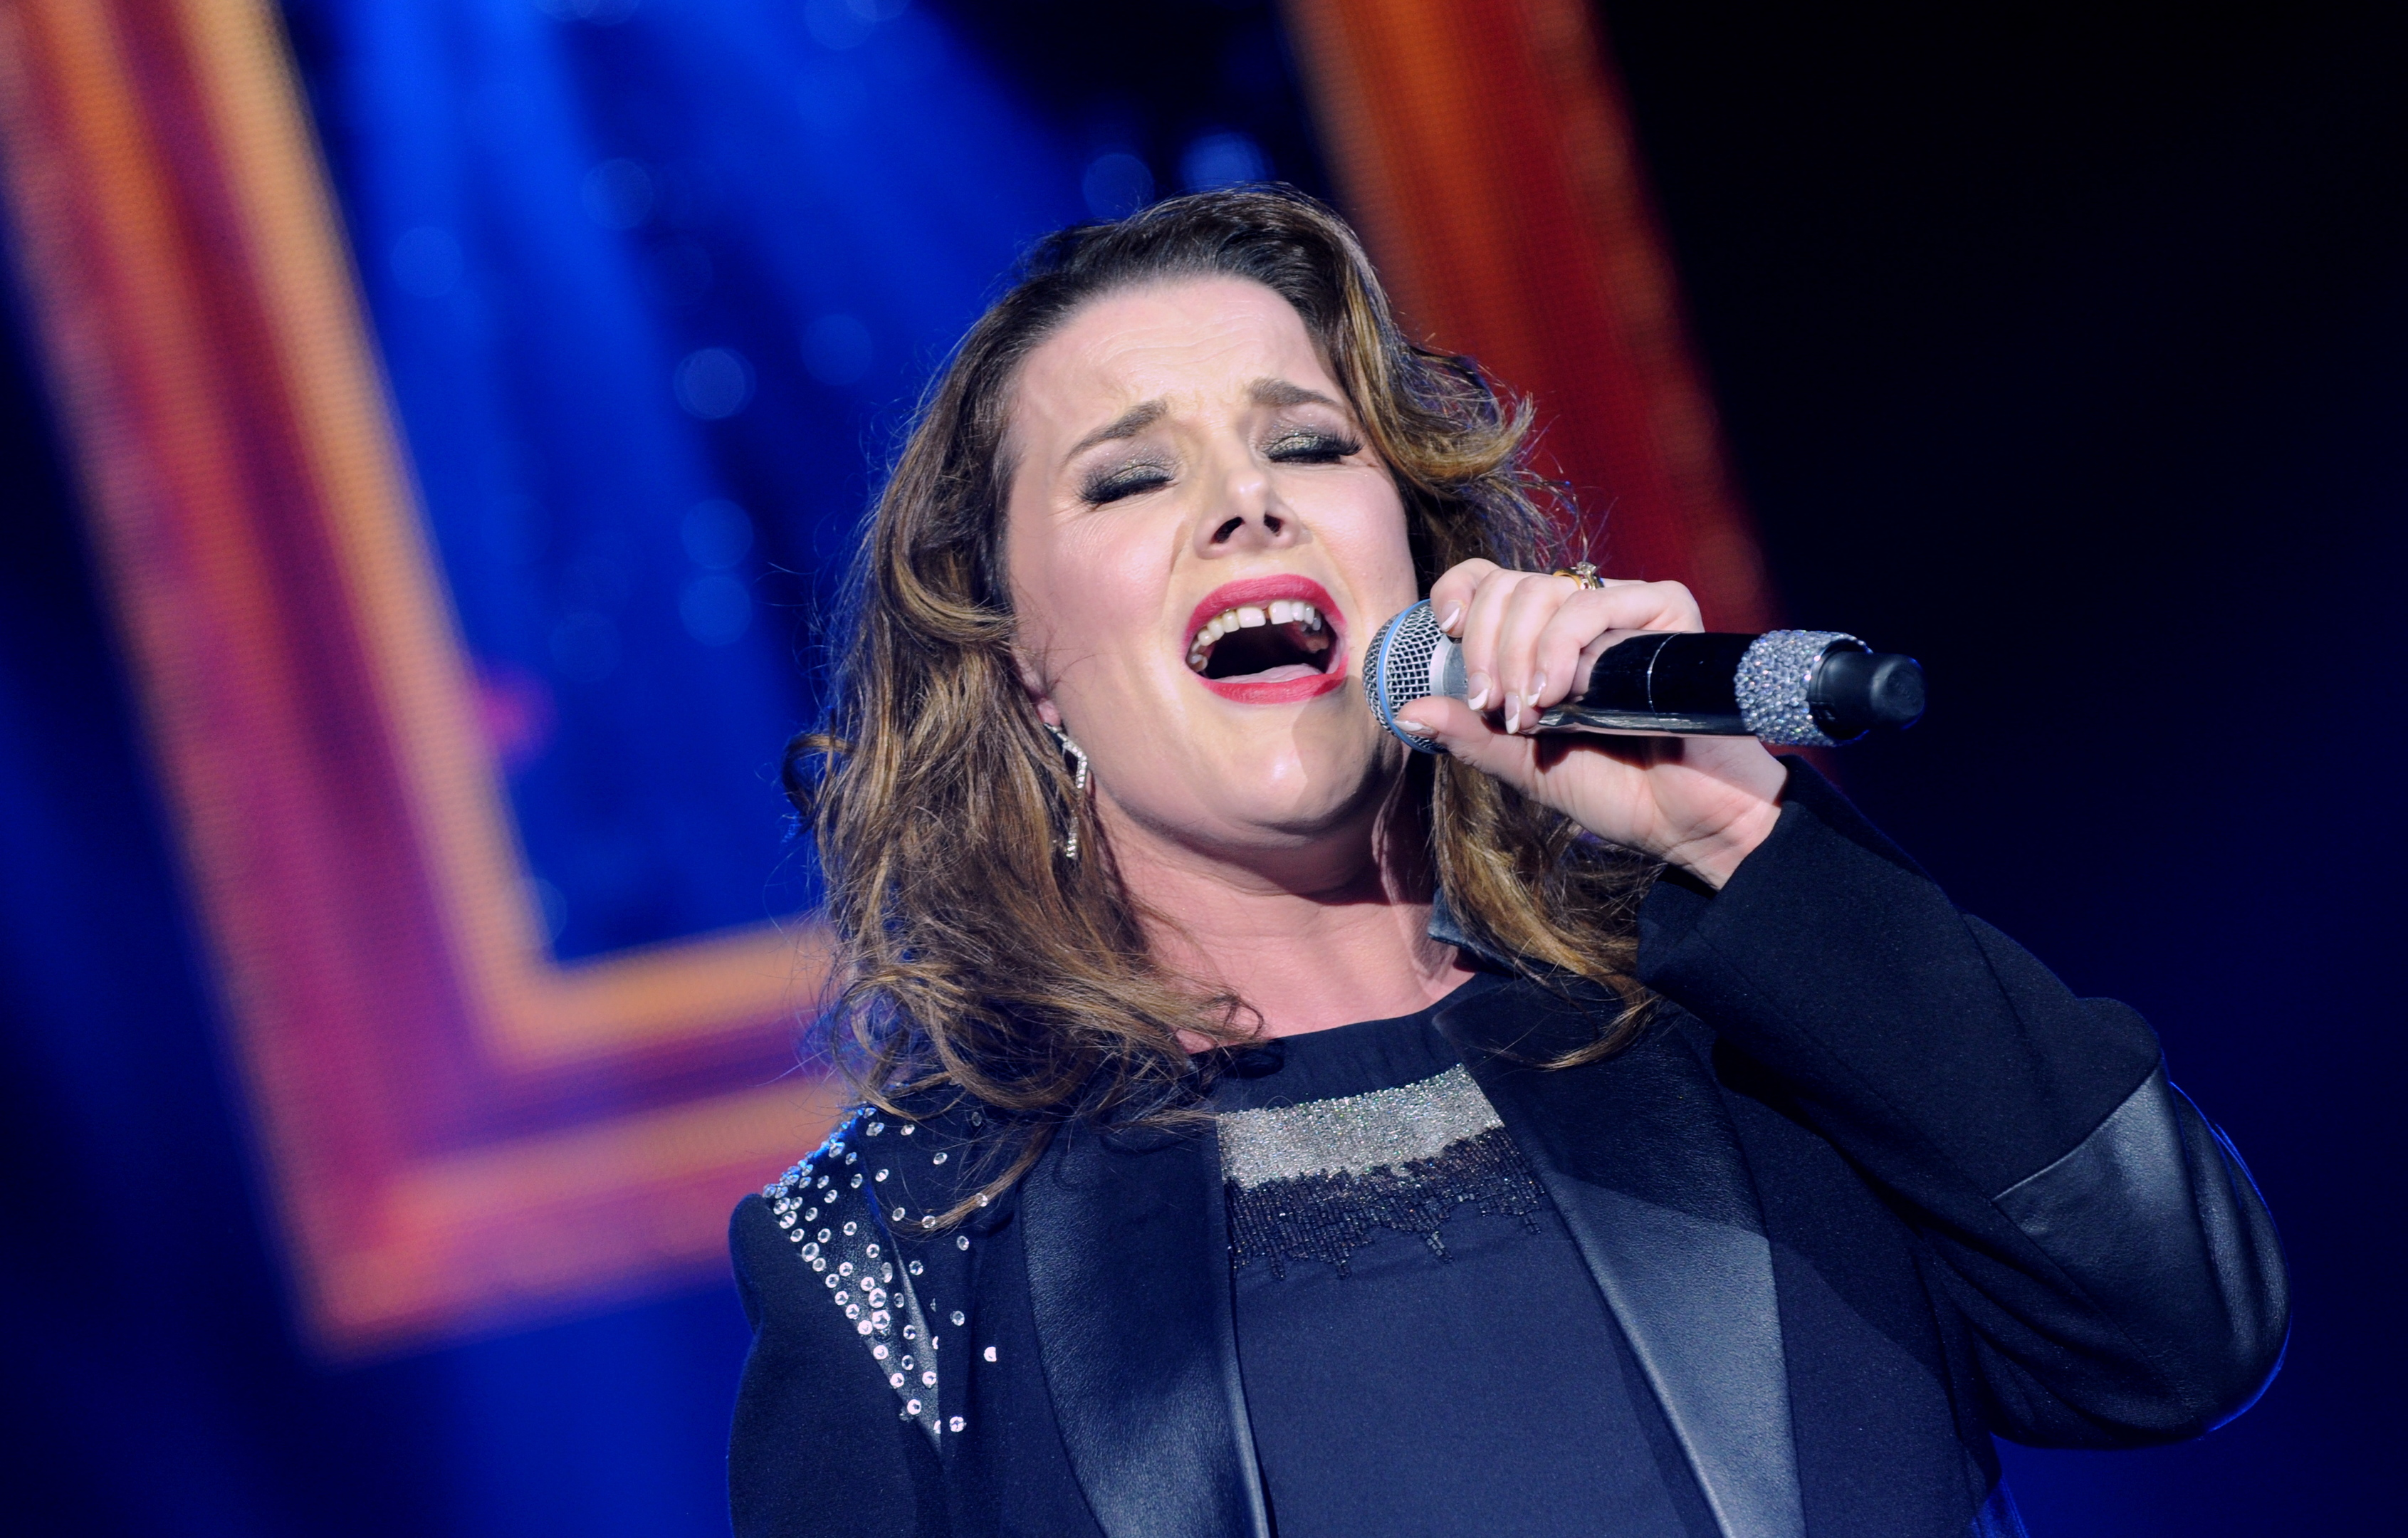 Sam Bailey shot to fame after winning The X Factor  in 2013.